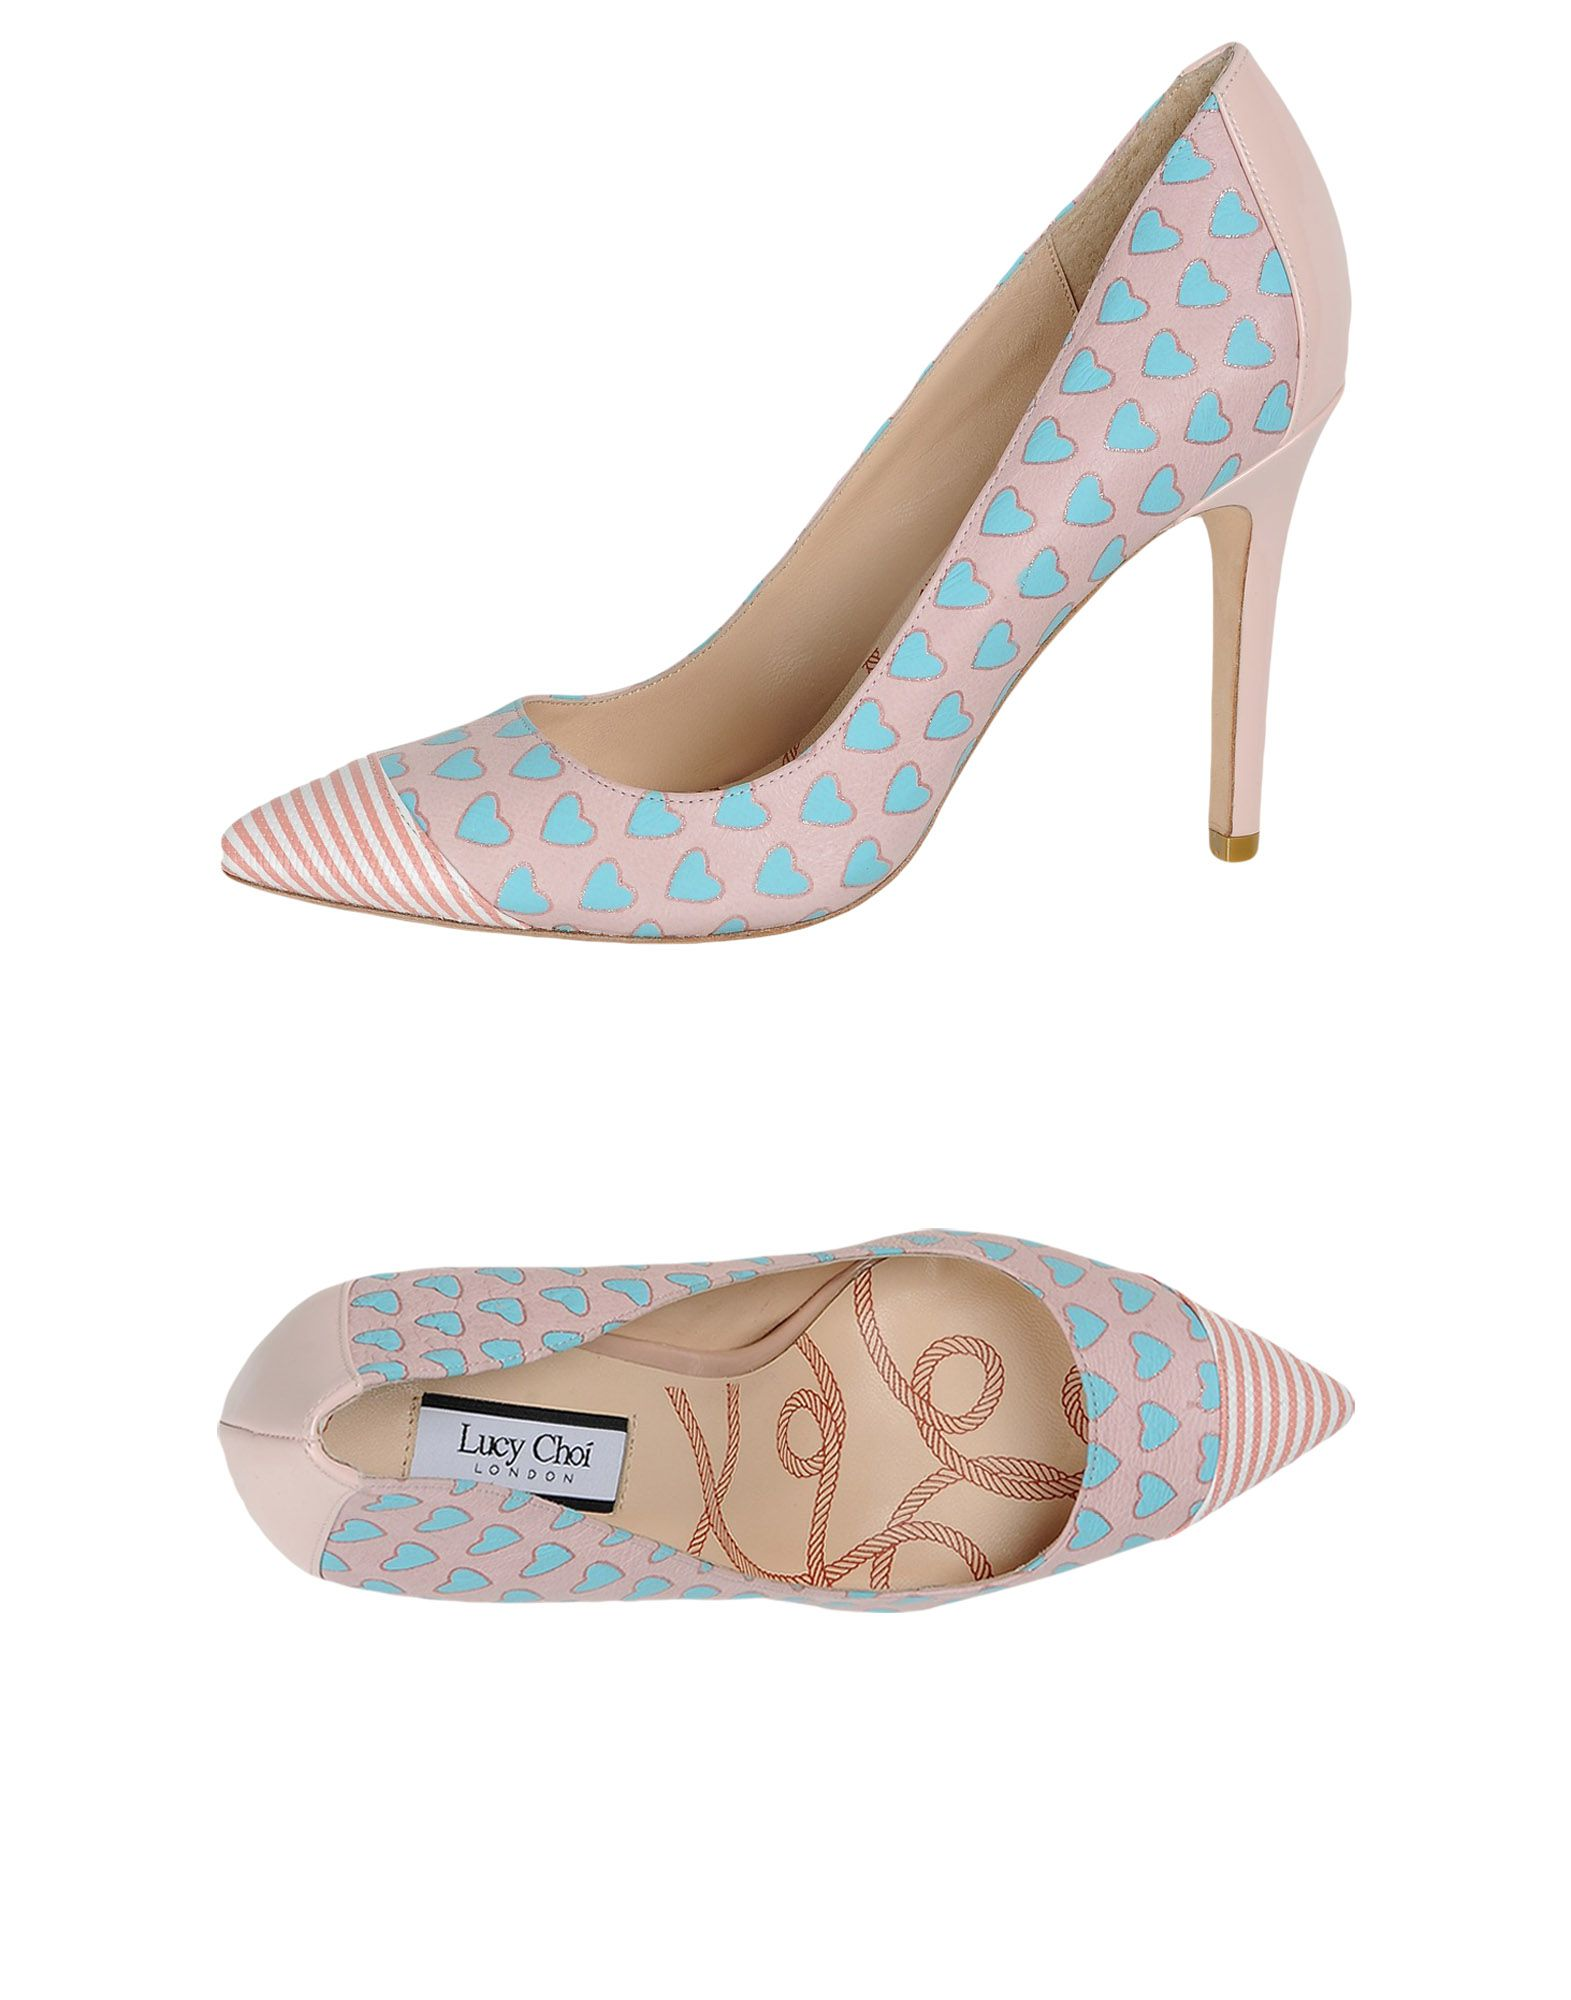 LUCY CHOI Pump in Light Pink